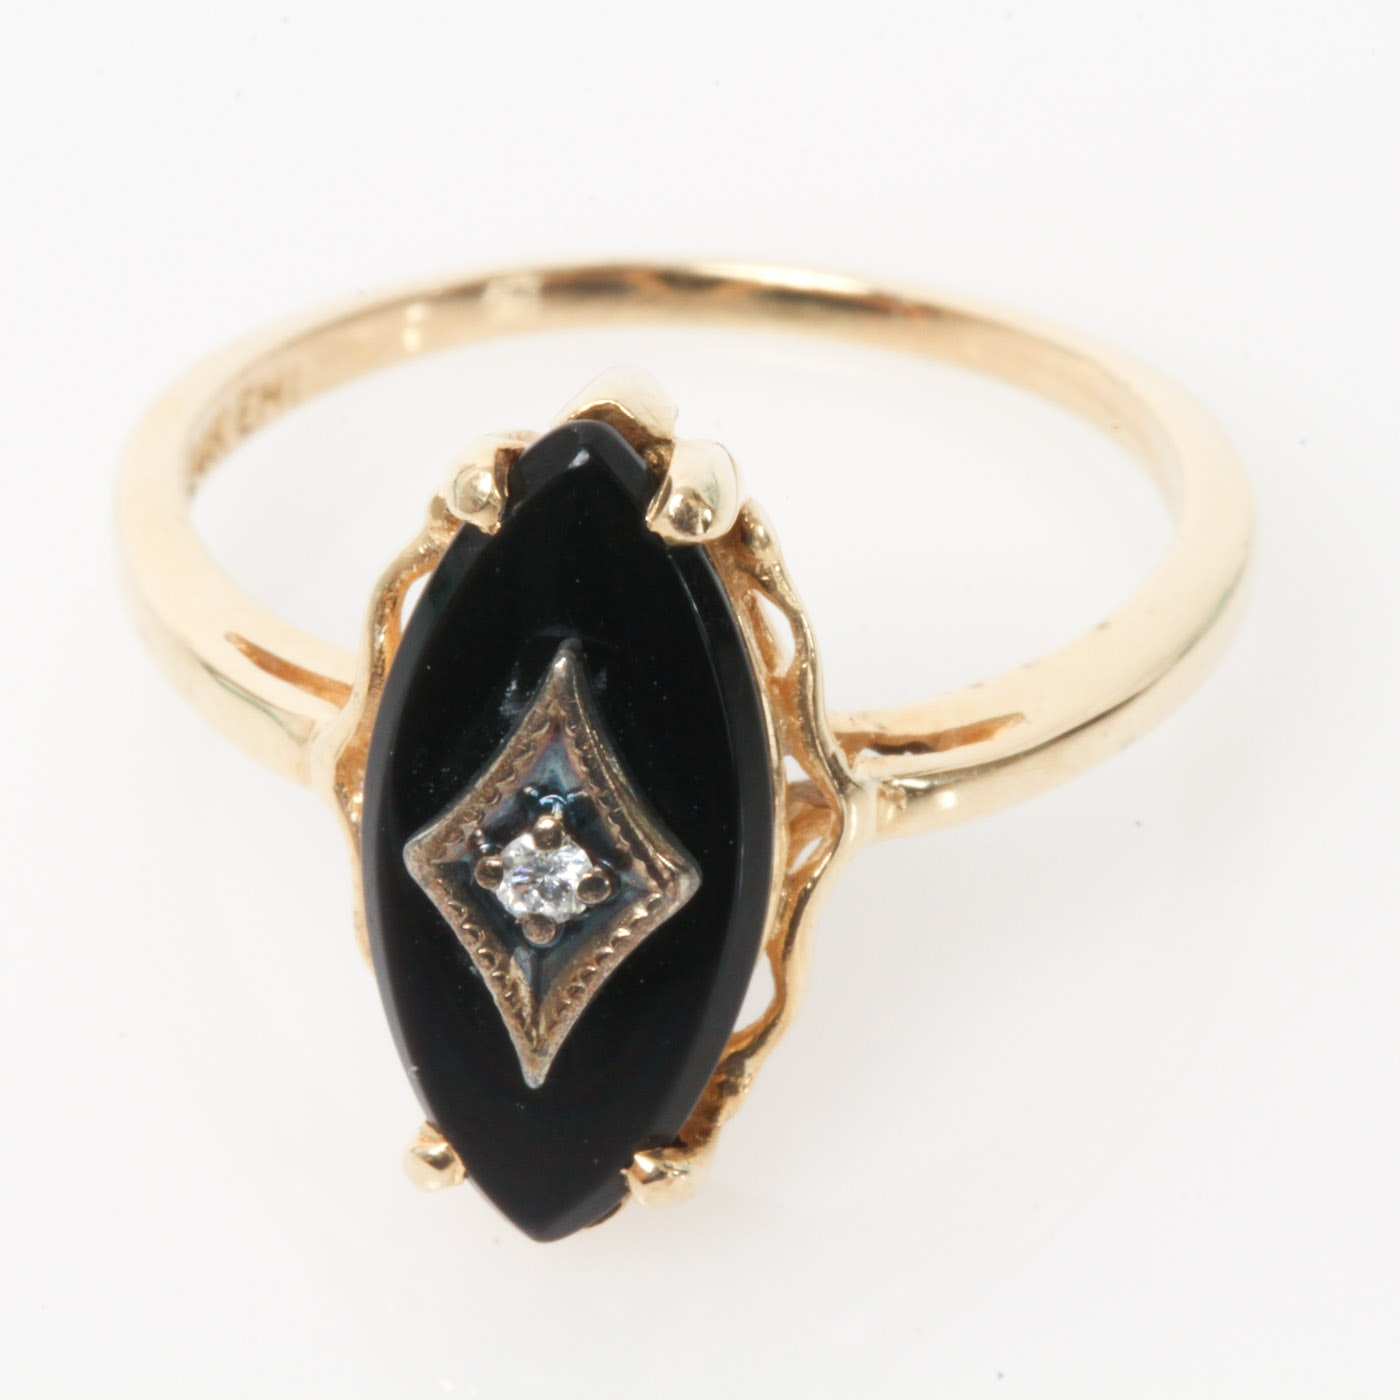 Vintage 14K Yellow Gold, Diamond, and Onyx Ring